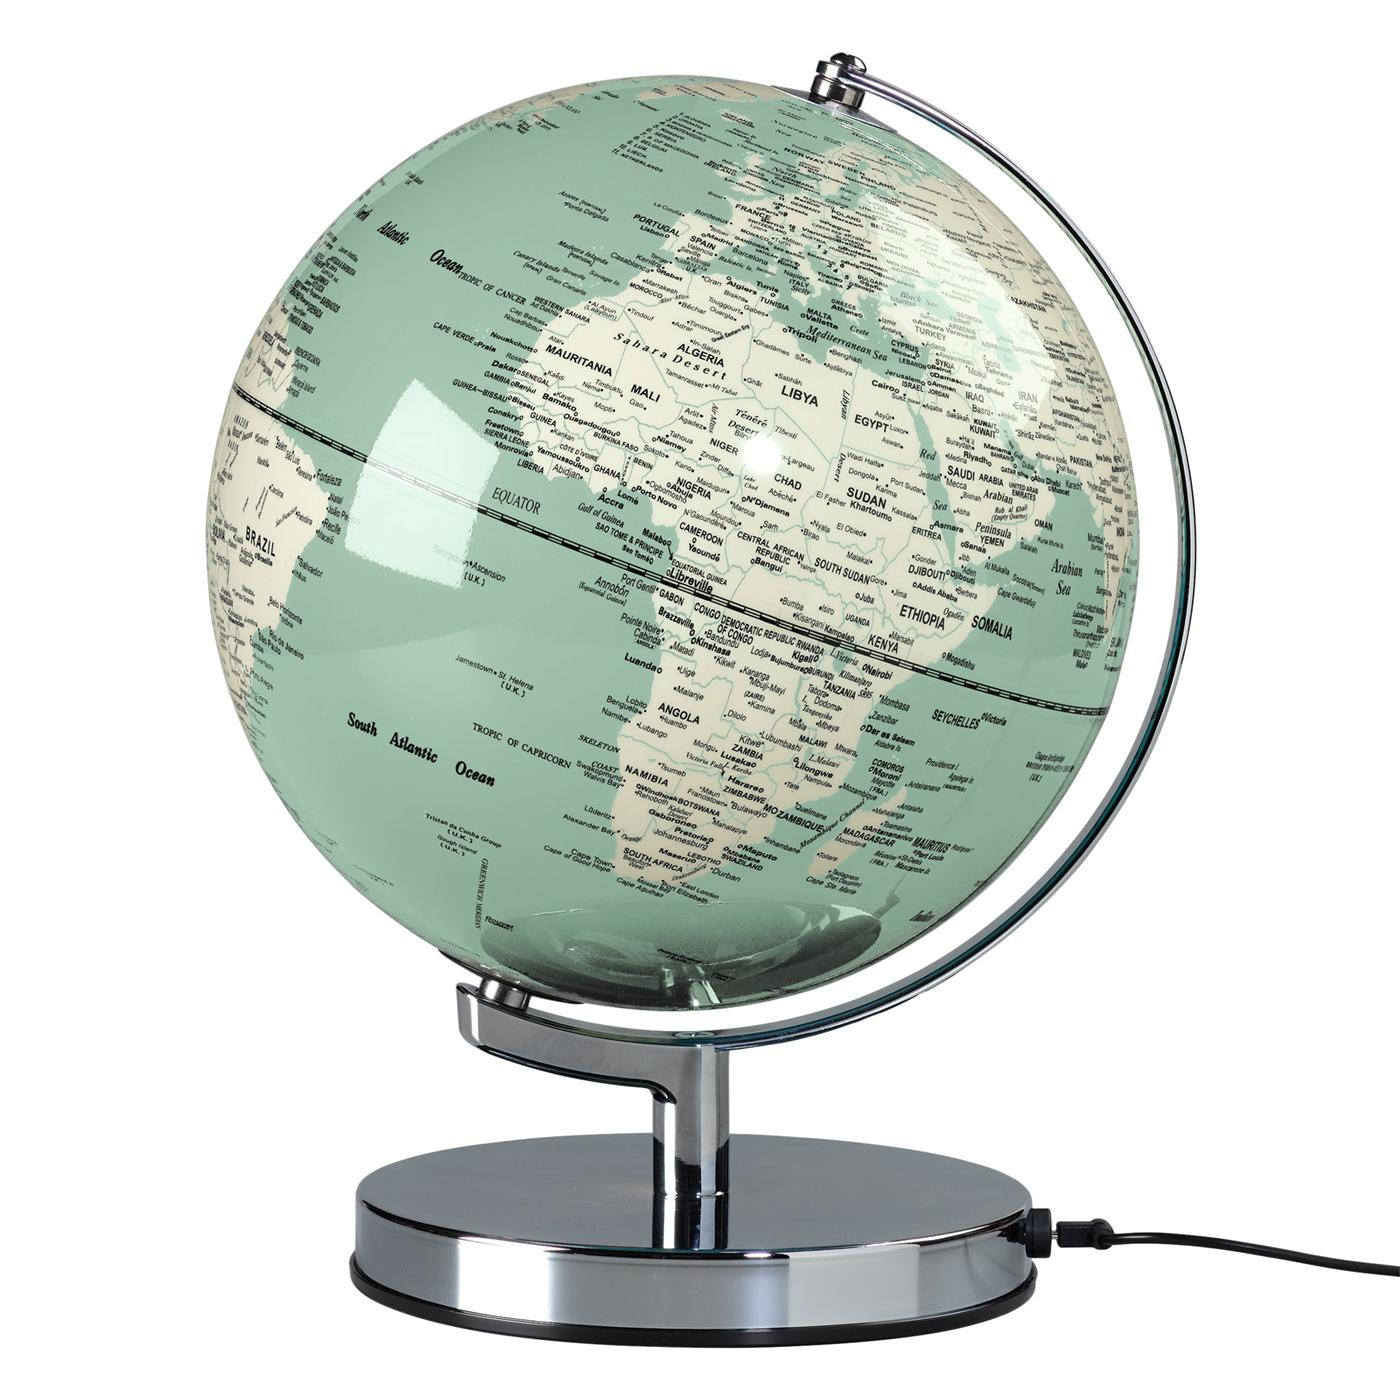 WILD & WOLF Retro Illuminated Globe Lamp - Green